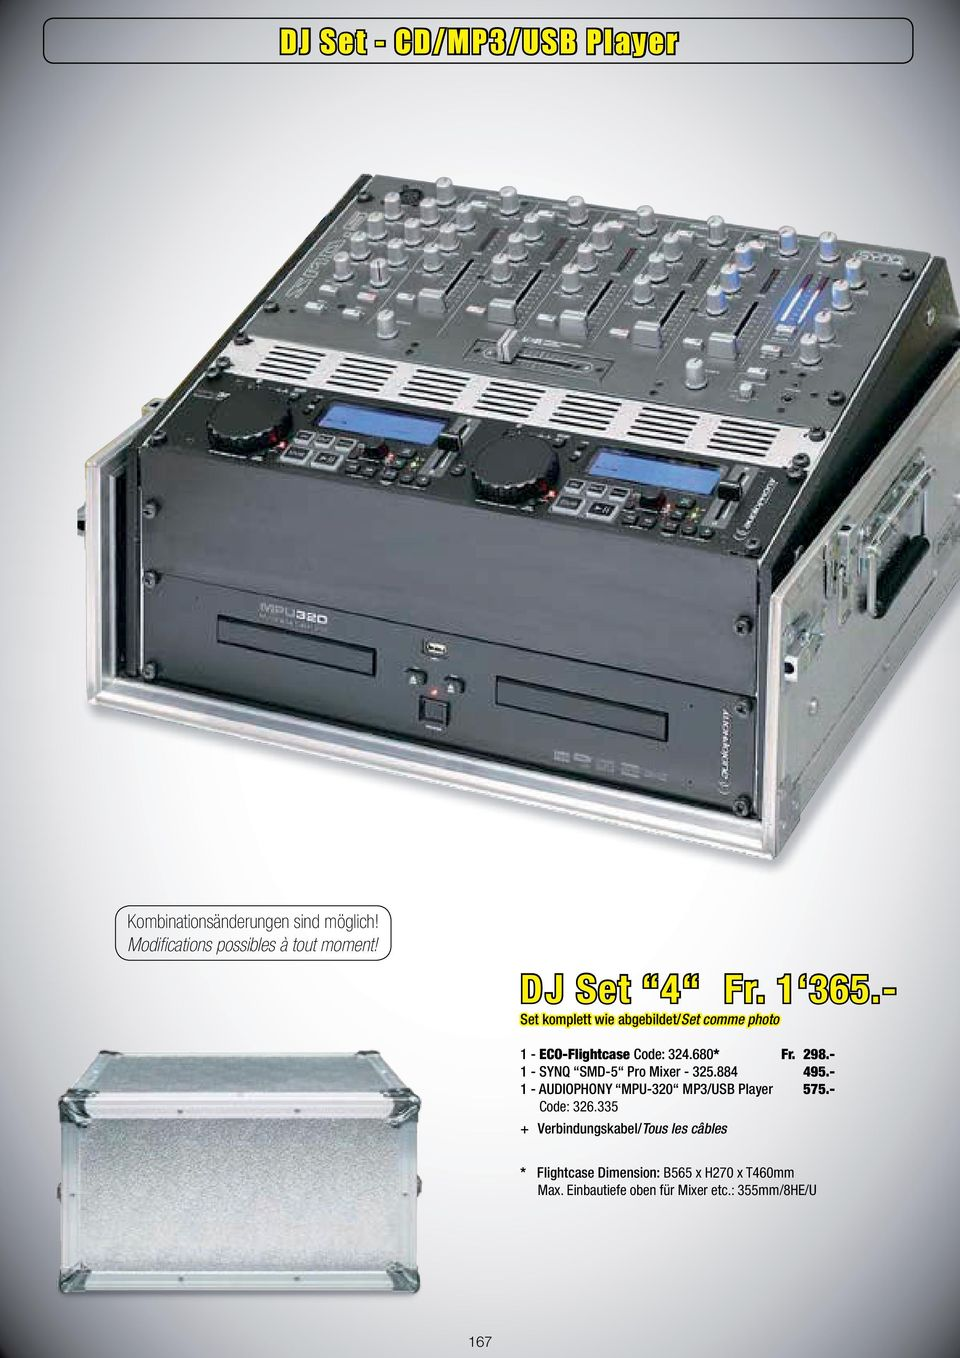 298.- 1 - SYNQ SMD-5 Pro Mixer - 325.884 495.- 1 - AUDIOPHONY MPU-320 MP3/USB Player 575.